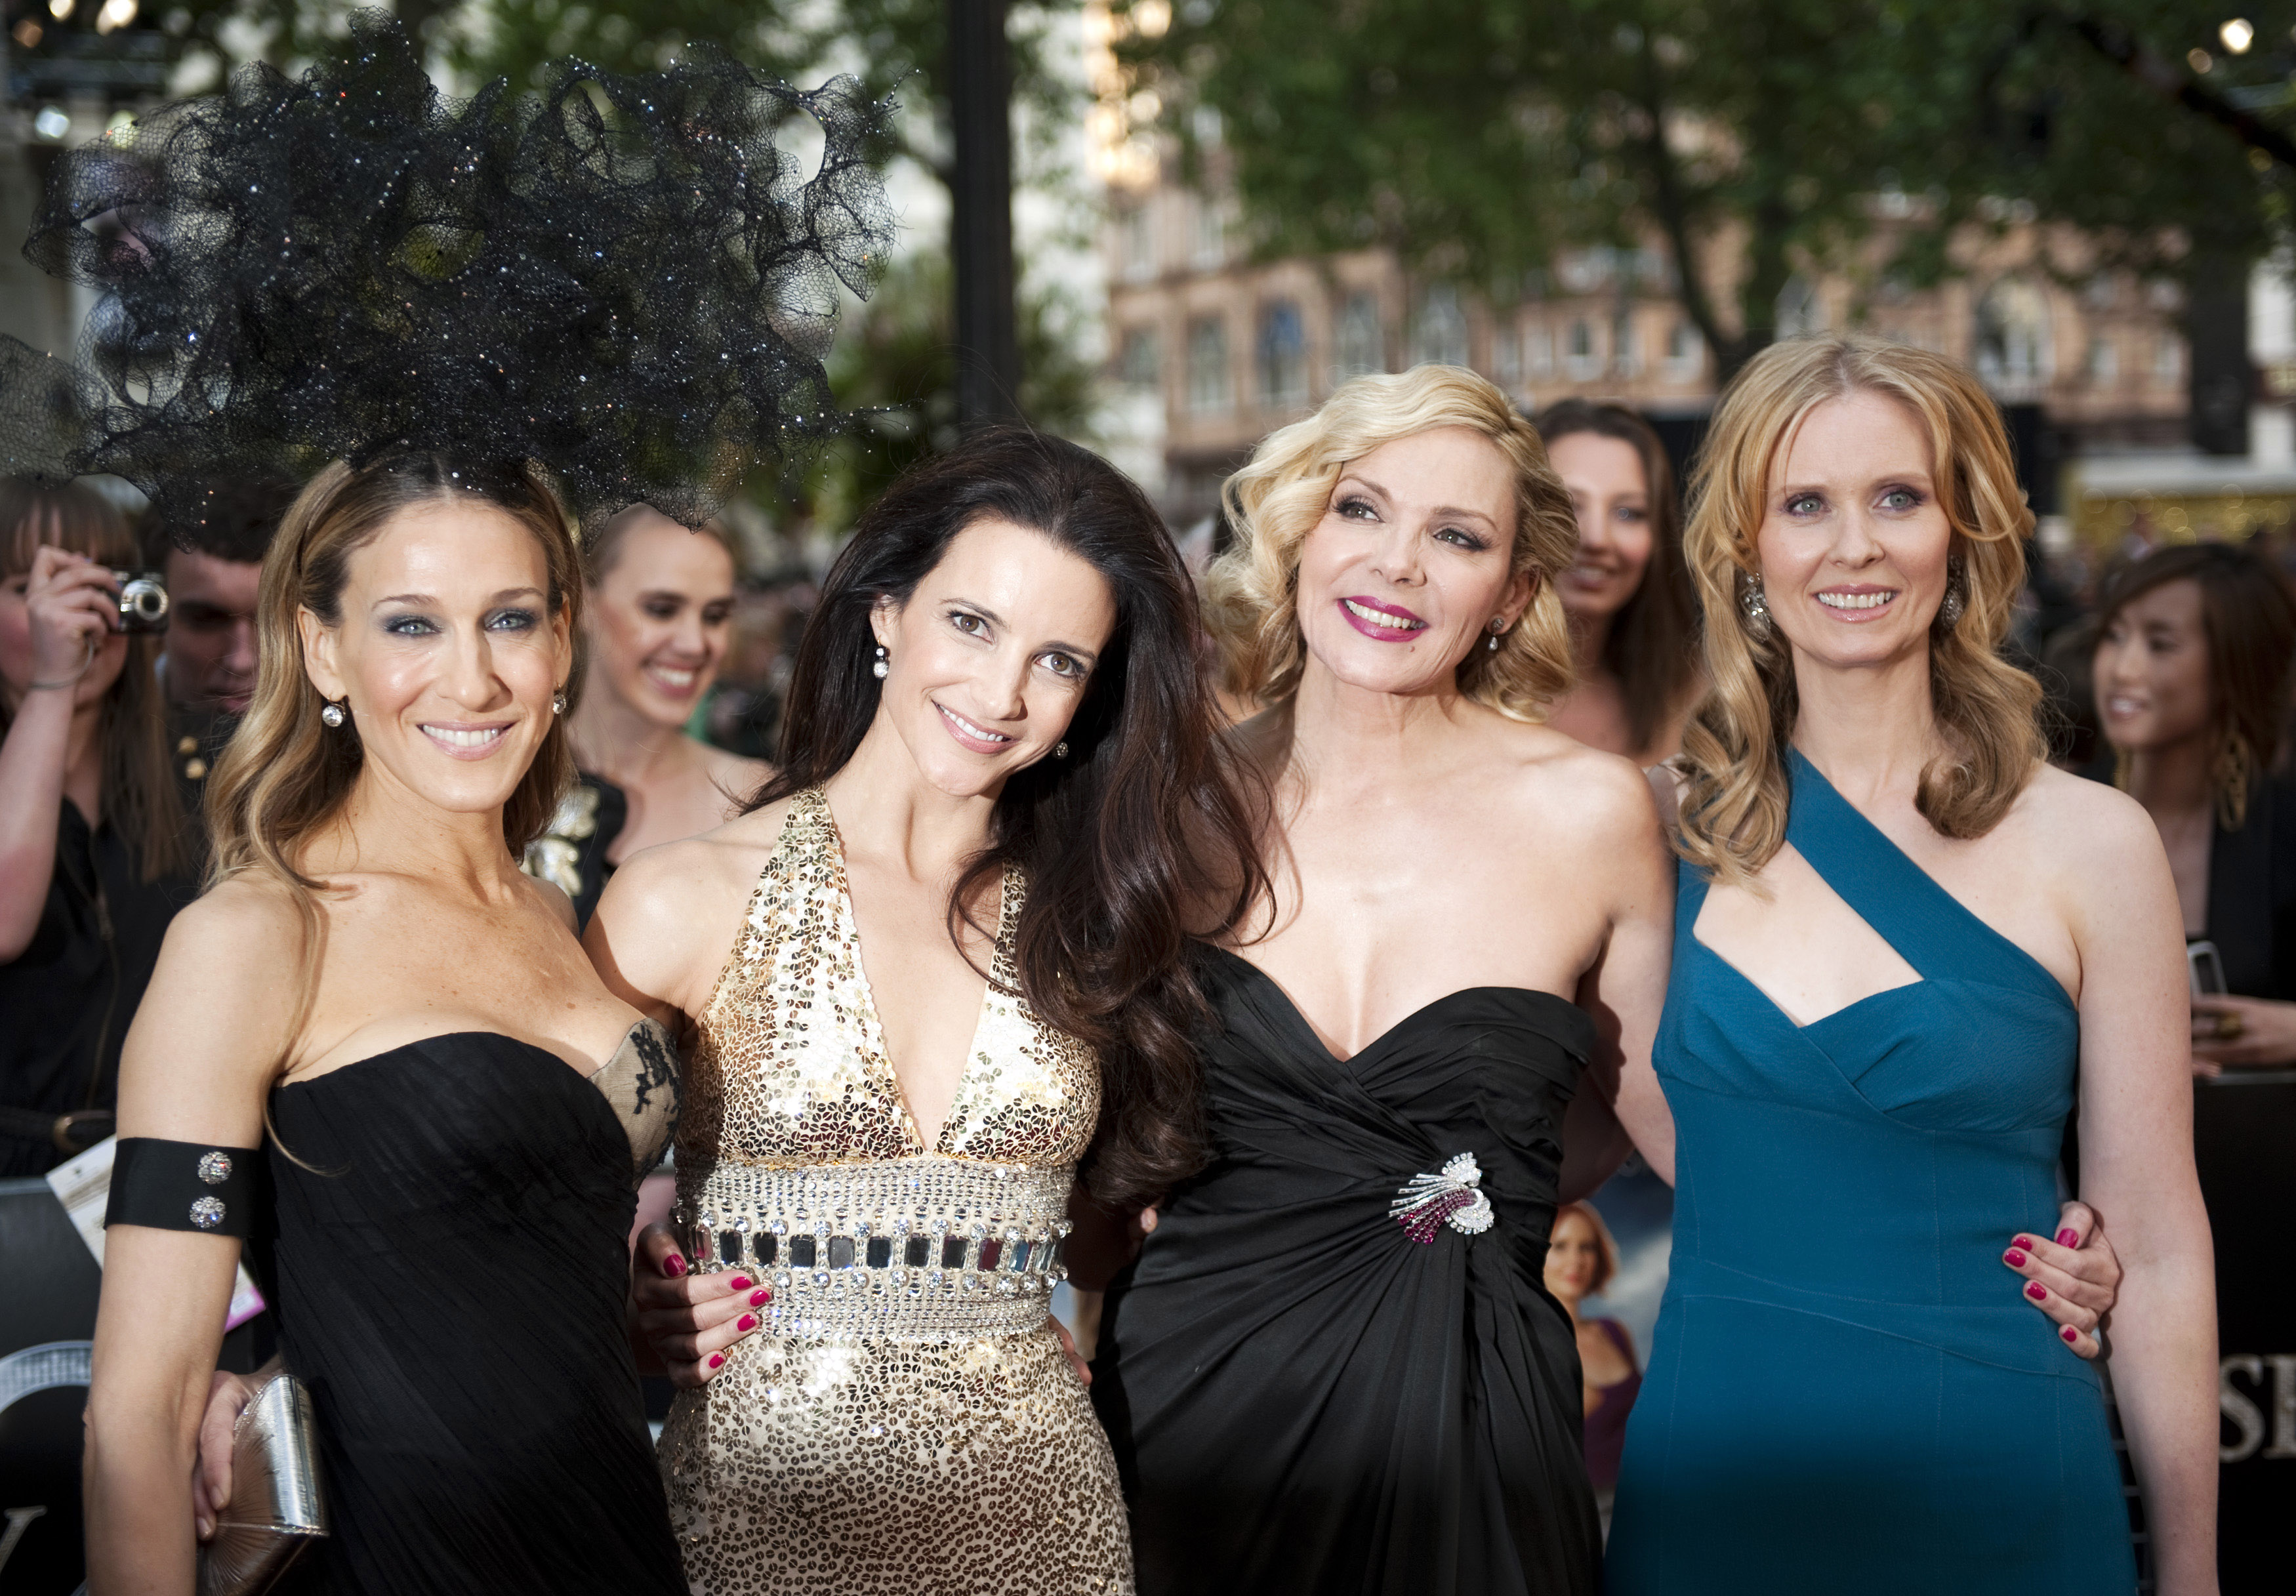 Satc cast genuinely care about each other says source